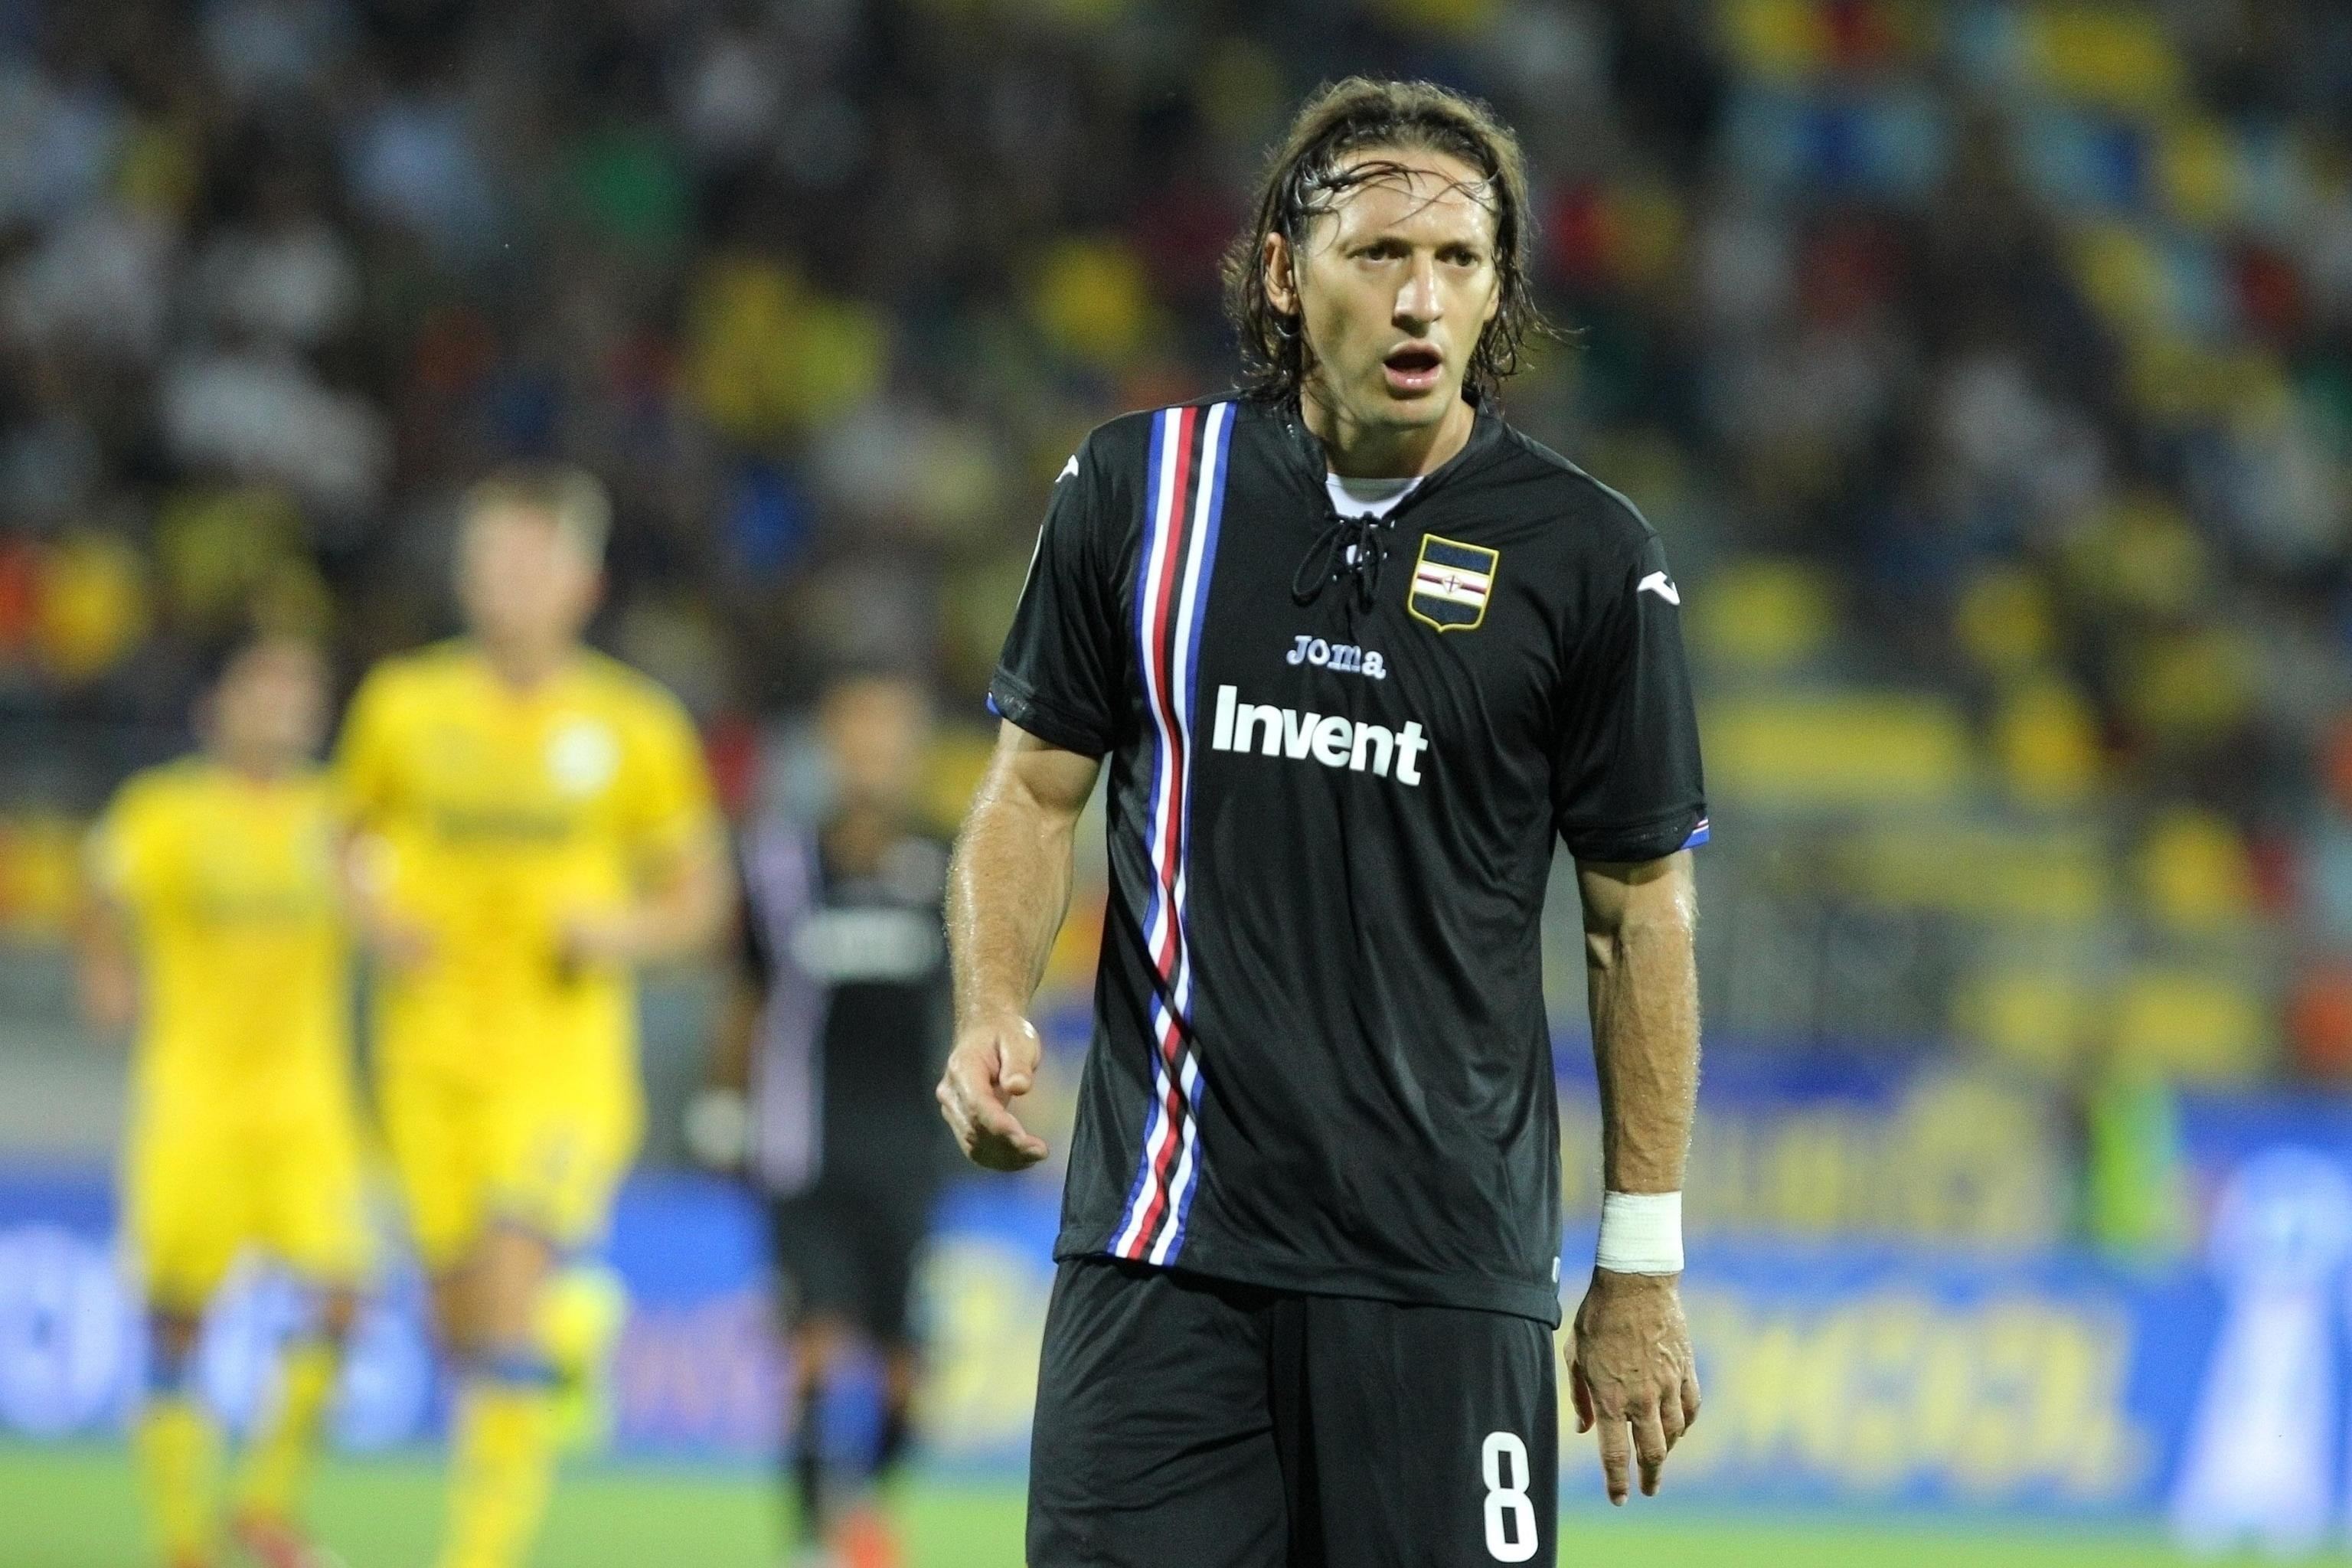 Edgar Barreto (Calcio - Sampdoria) guarito